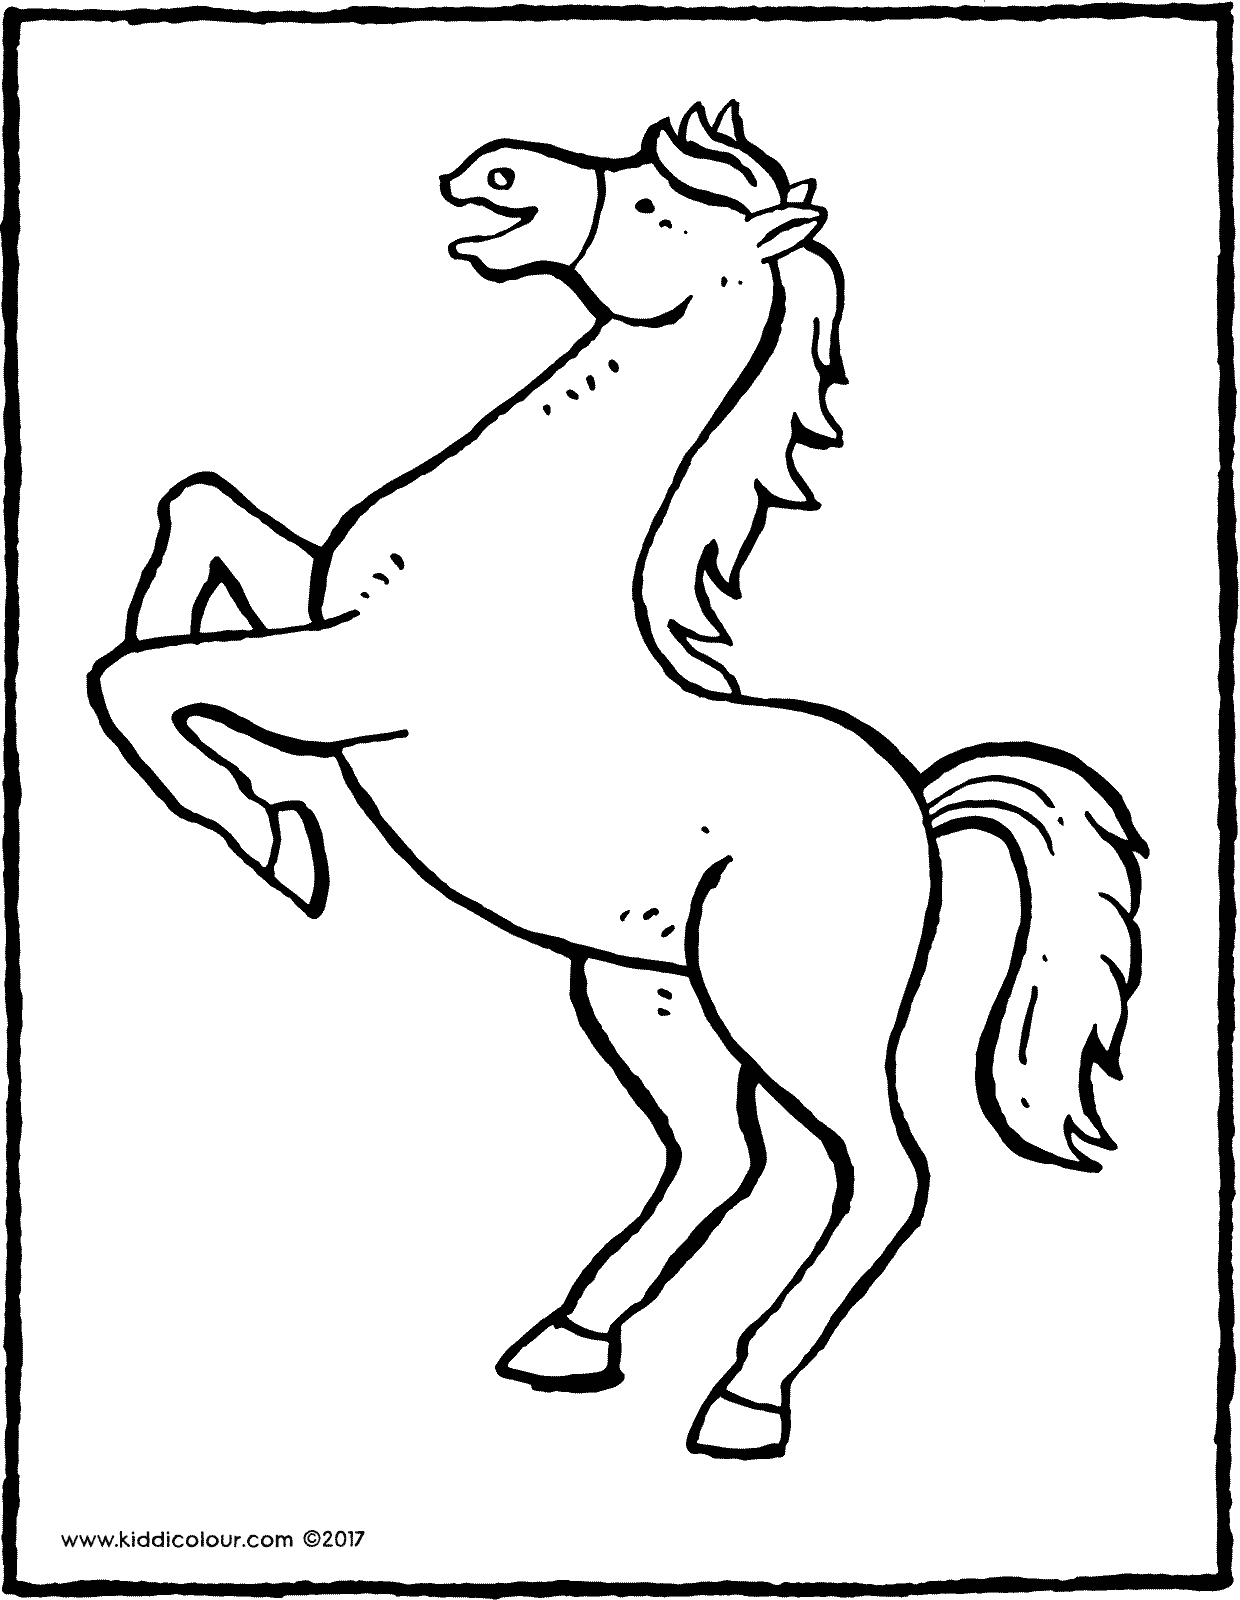 a rearing horse colouring page drawing picture 01V